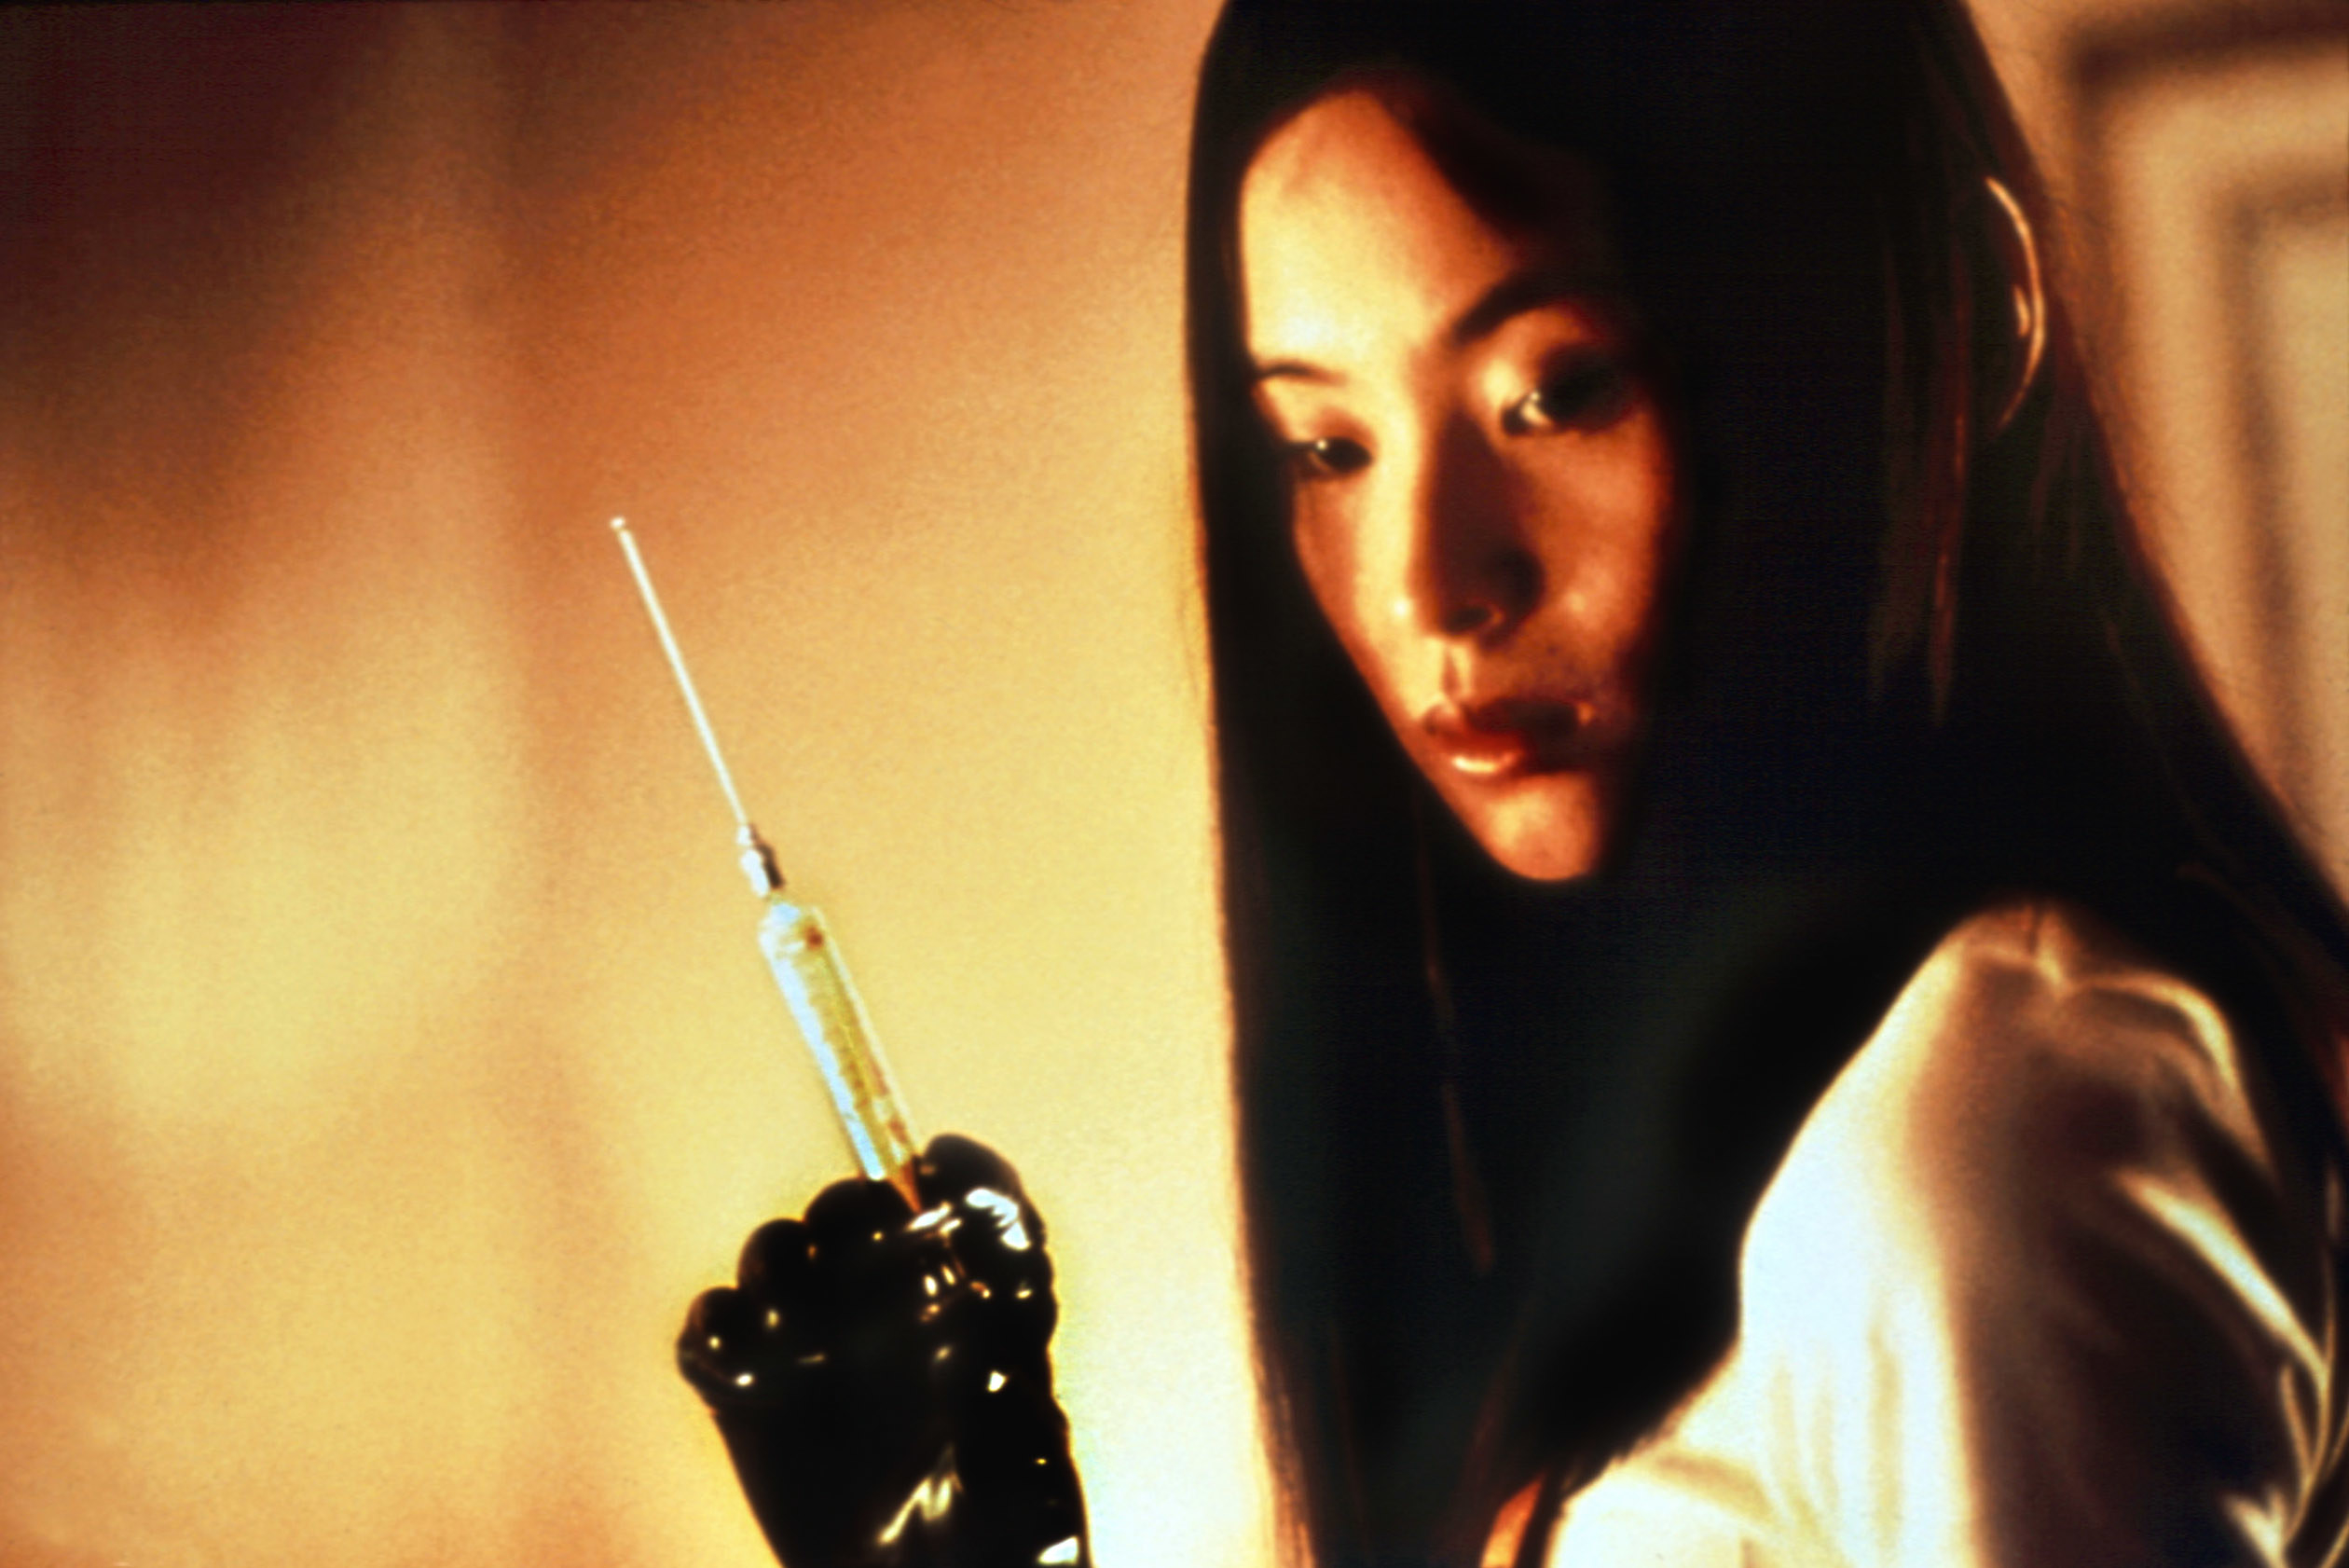 a woman holding an extra long needle